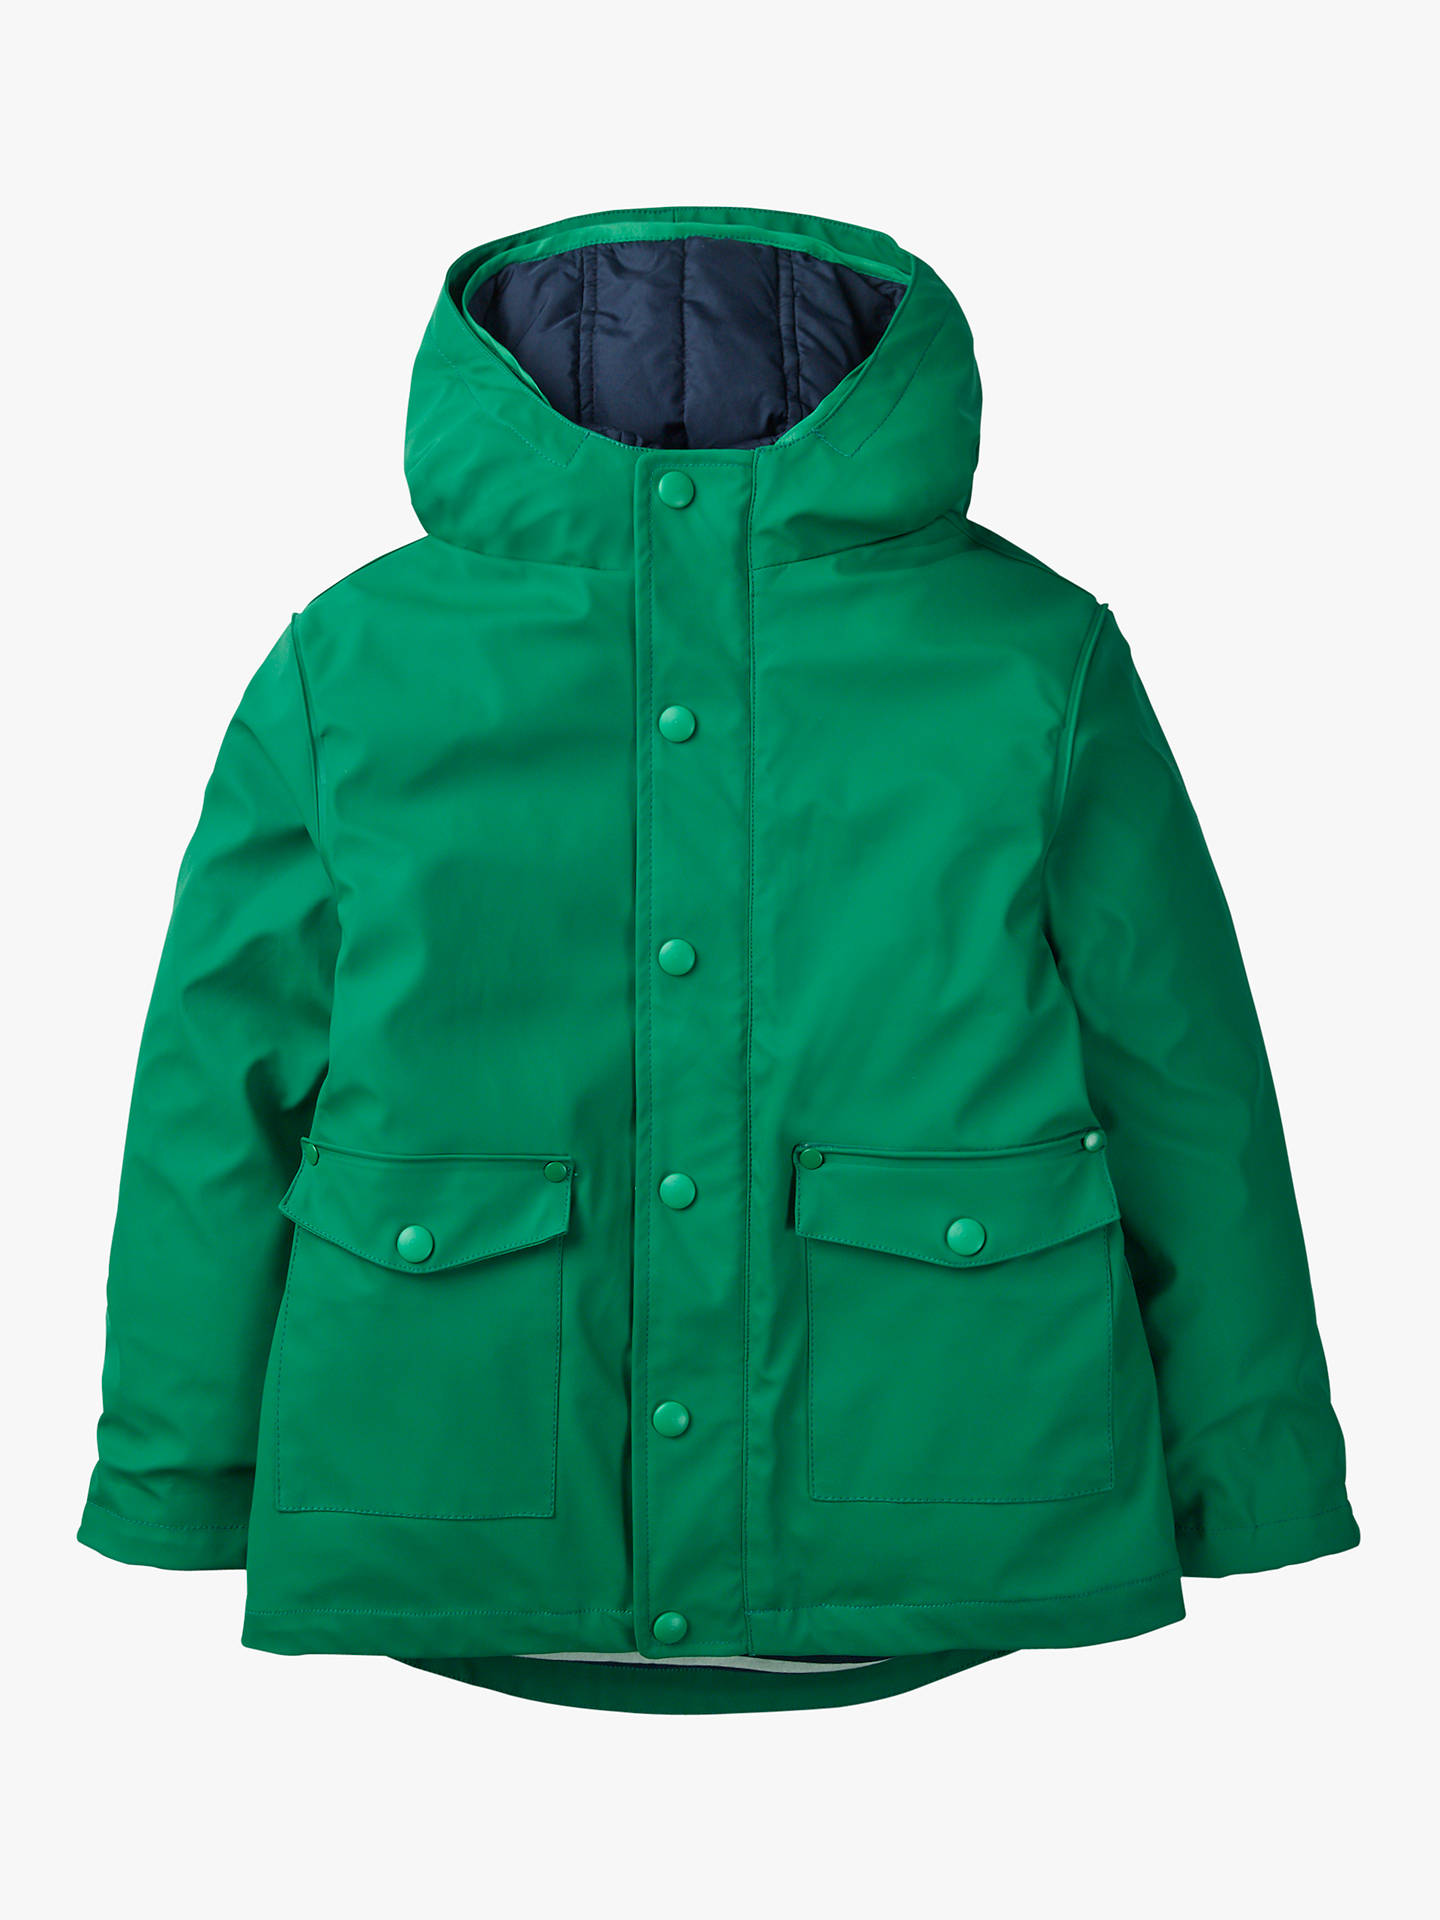 13f0fa6ebbb9 Mini Boden Boys  3 in1 Waterproof Fisherman s Jacket